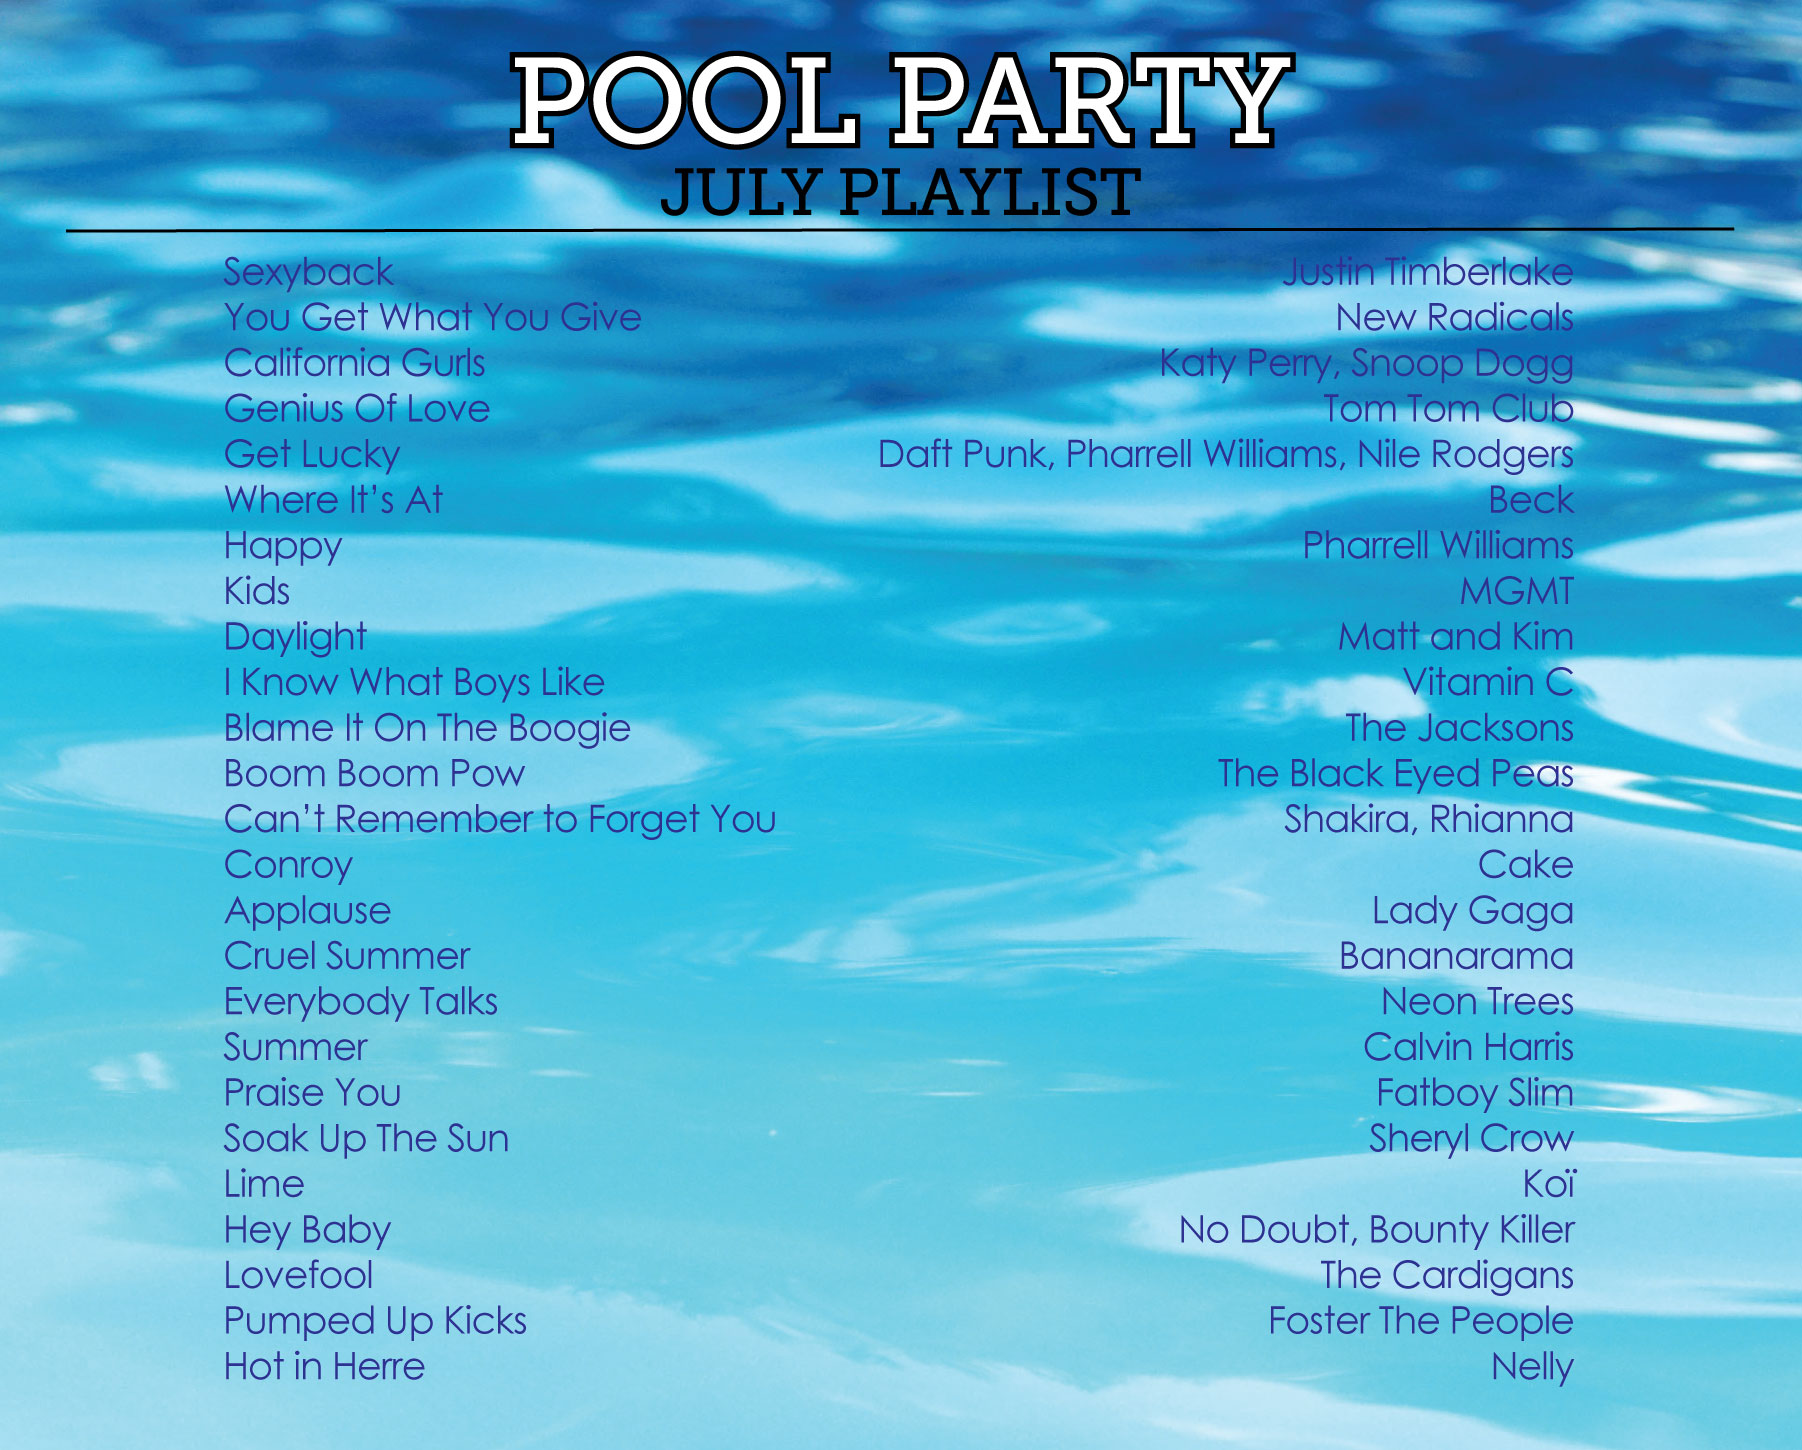 Pool Party Playlist by Sam Henderson of Today's Nest